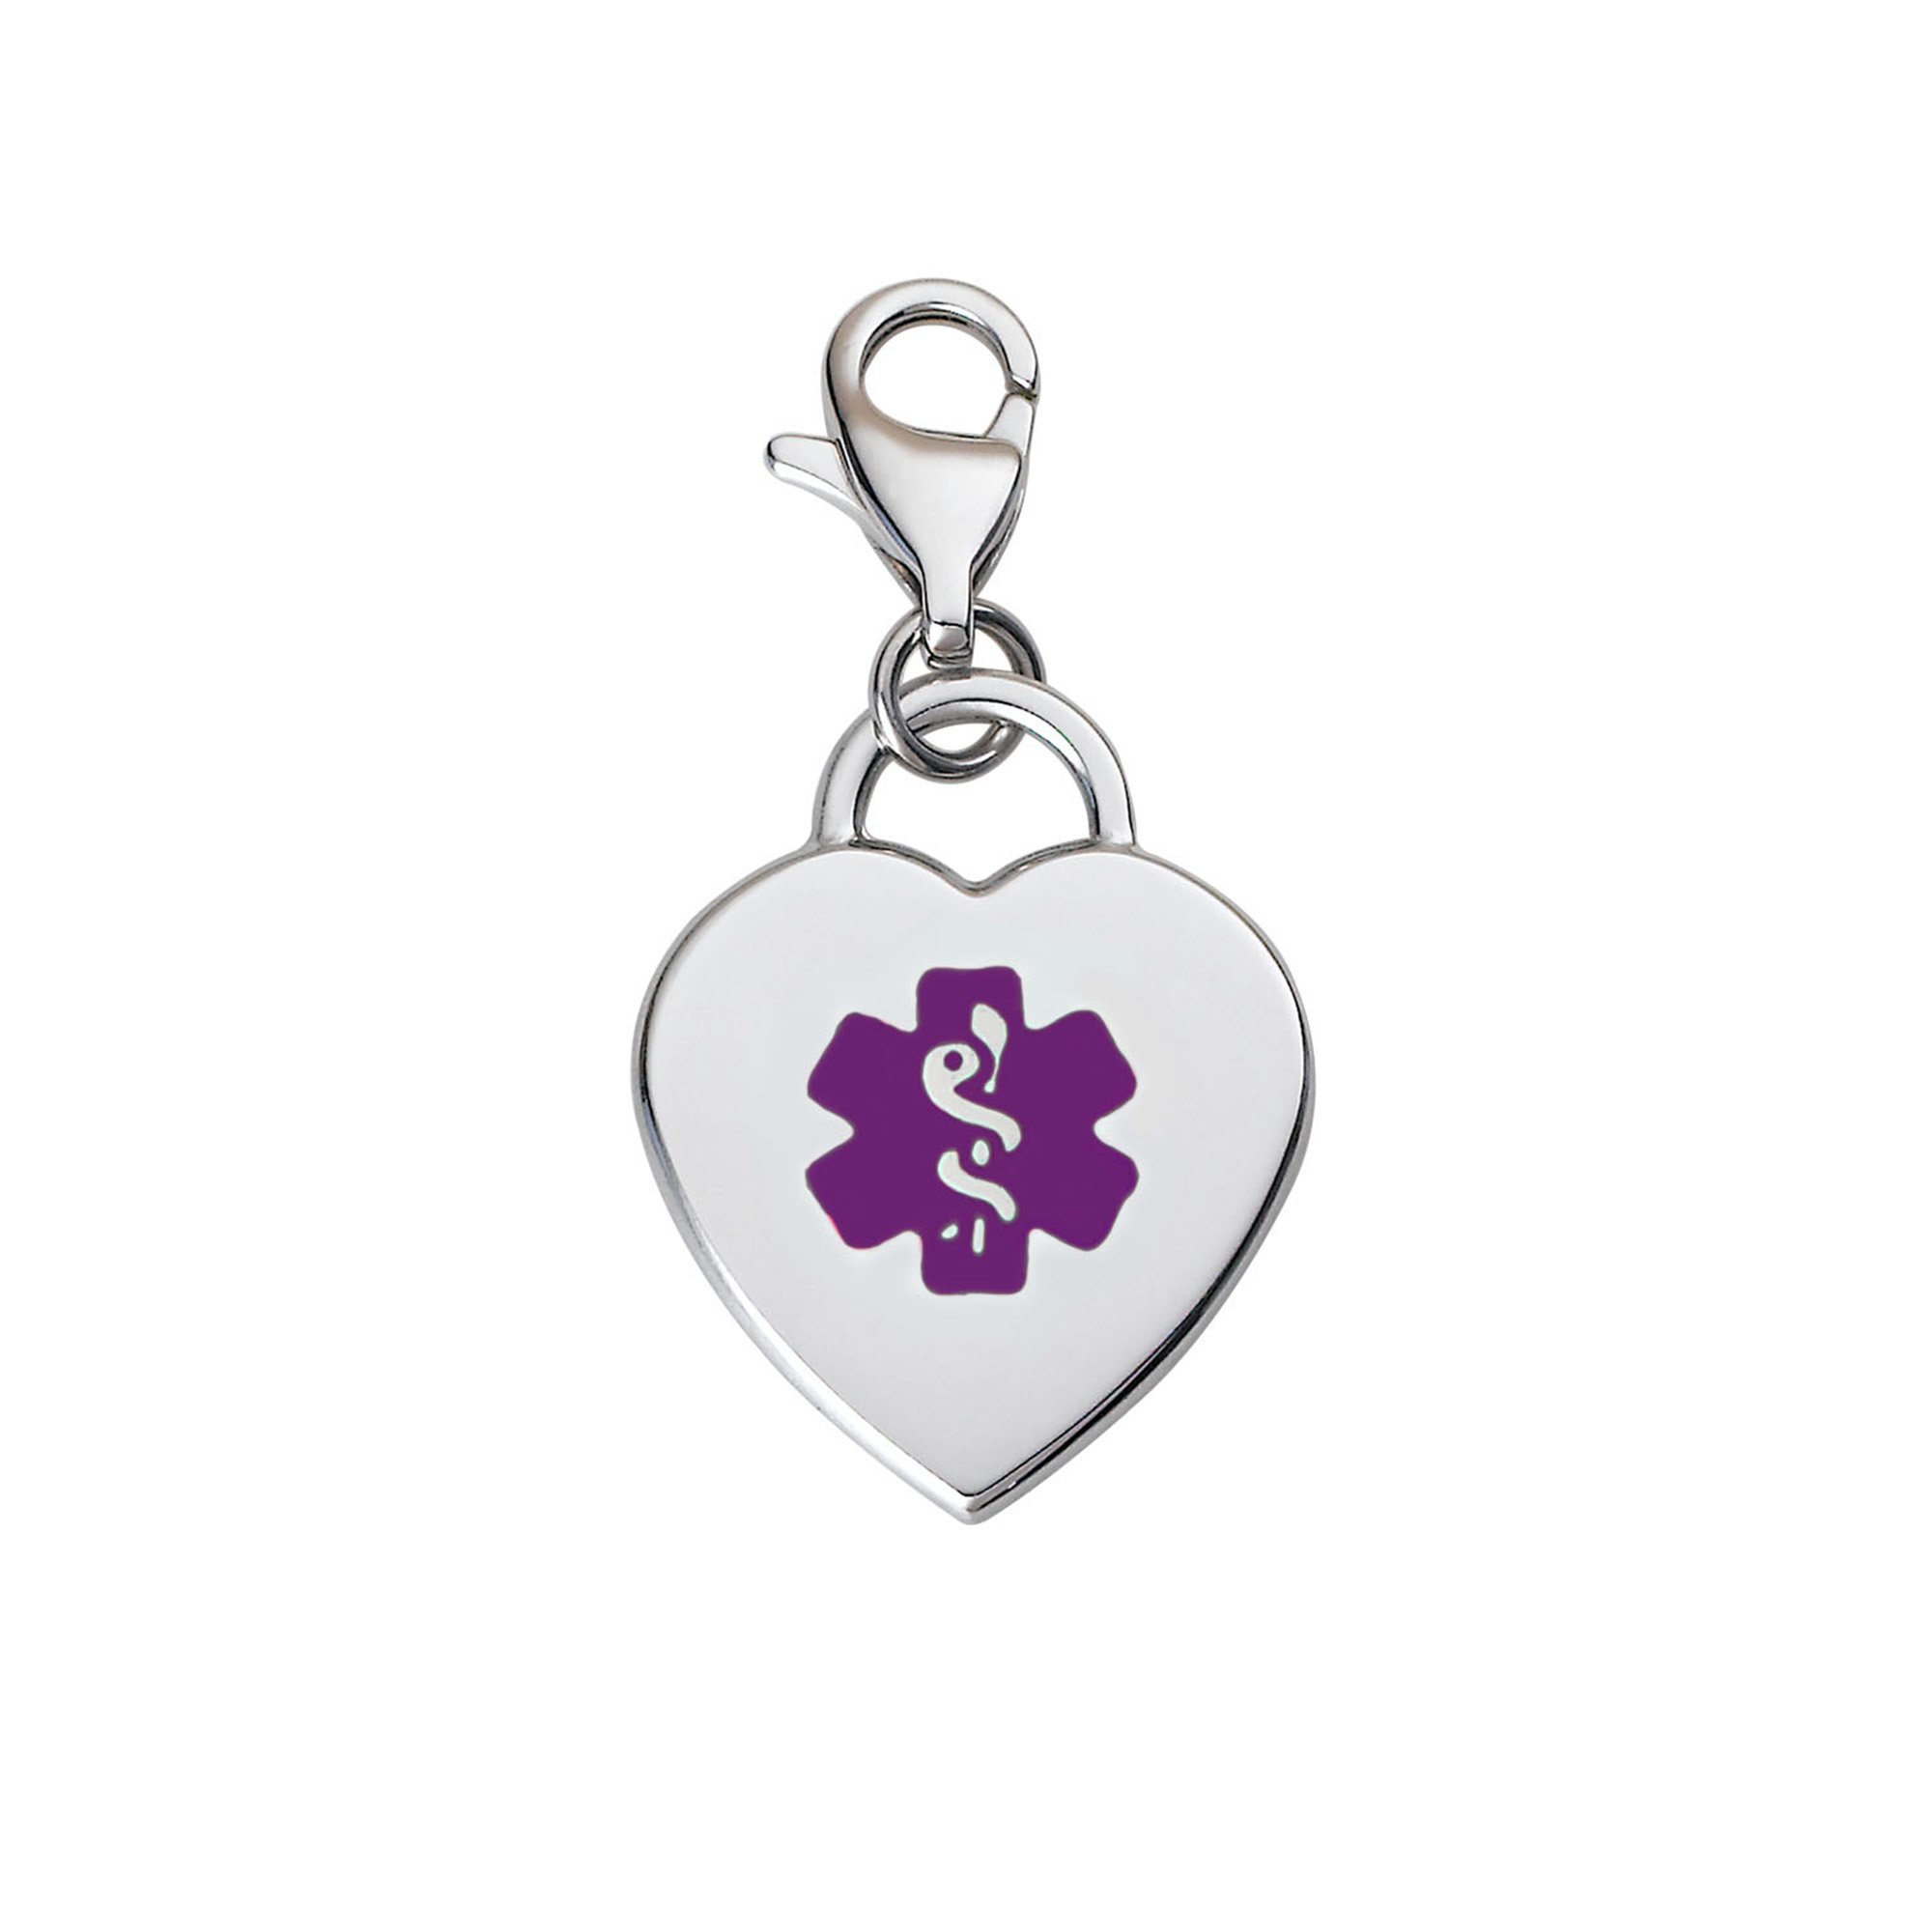 Divoti Custom Engraved Adorable Heart 316L Medical Alert Charm w/Lobster Clasp-Purple